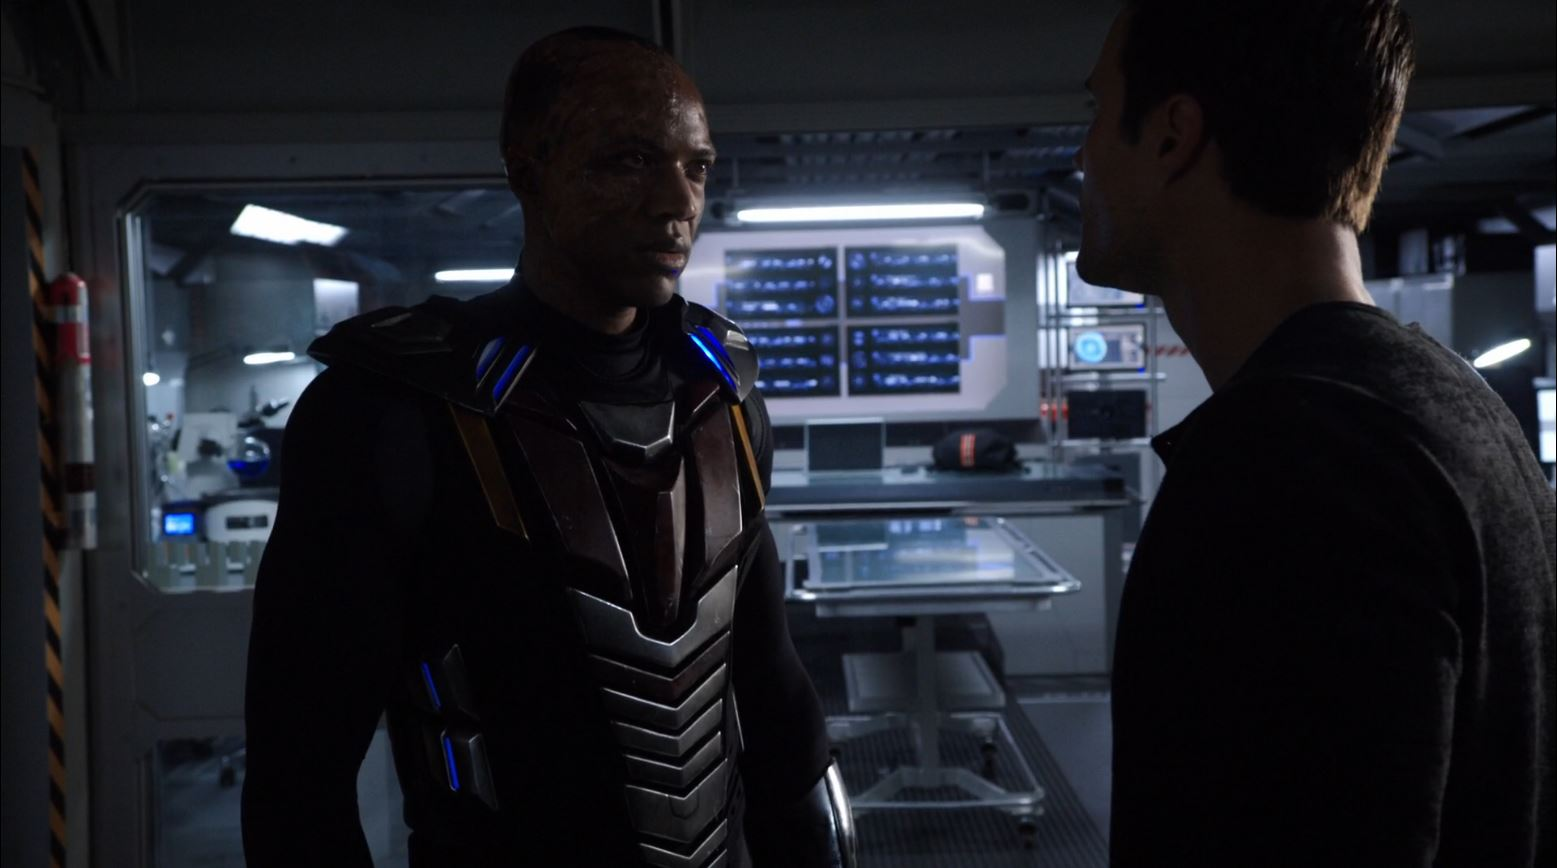 Agents of SHIELD S1Ep20 Nothing Personal - Deathlok